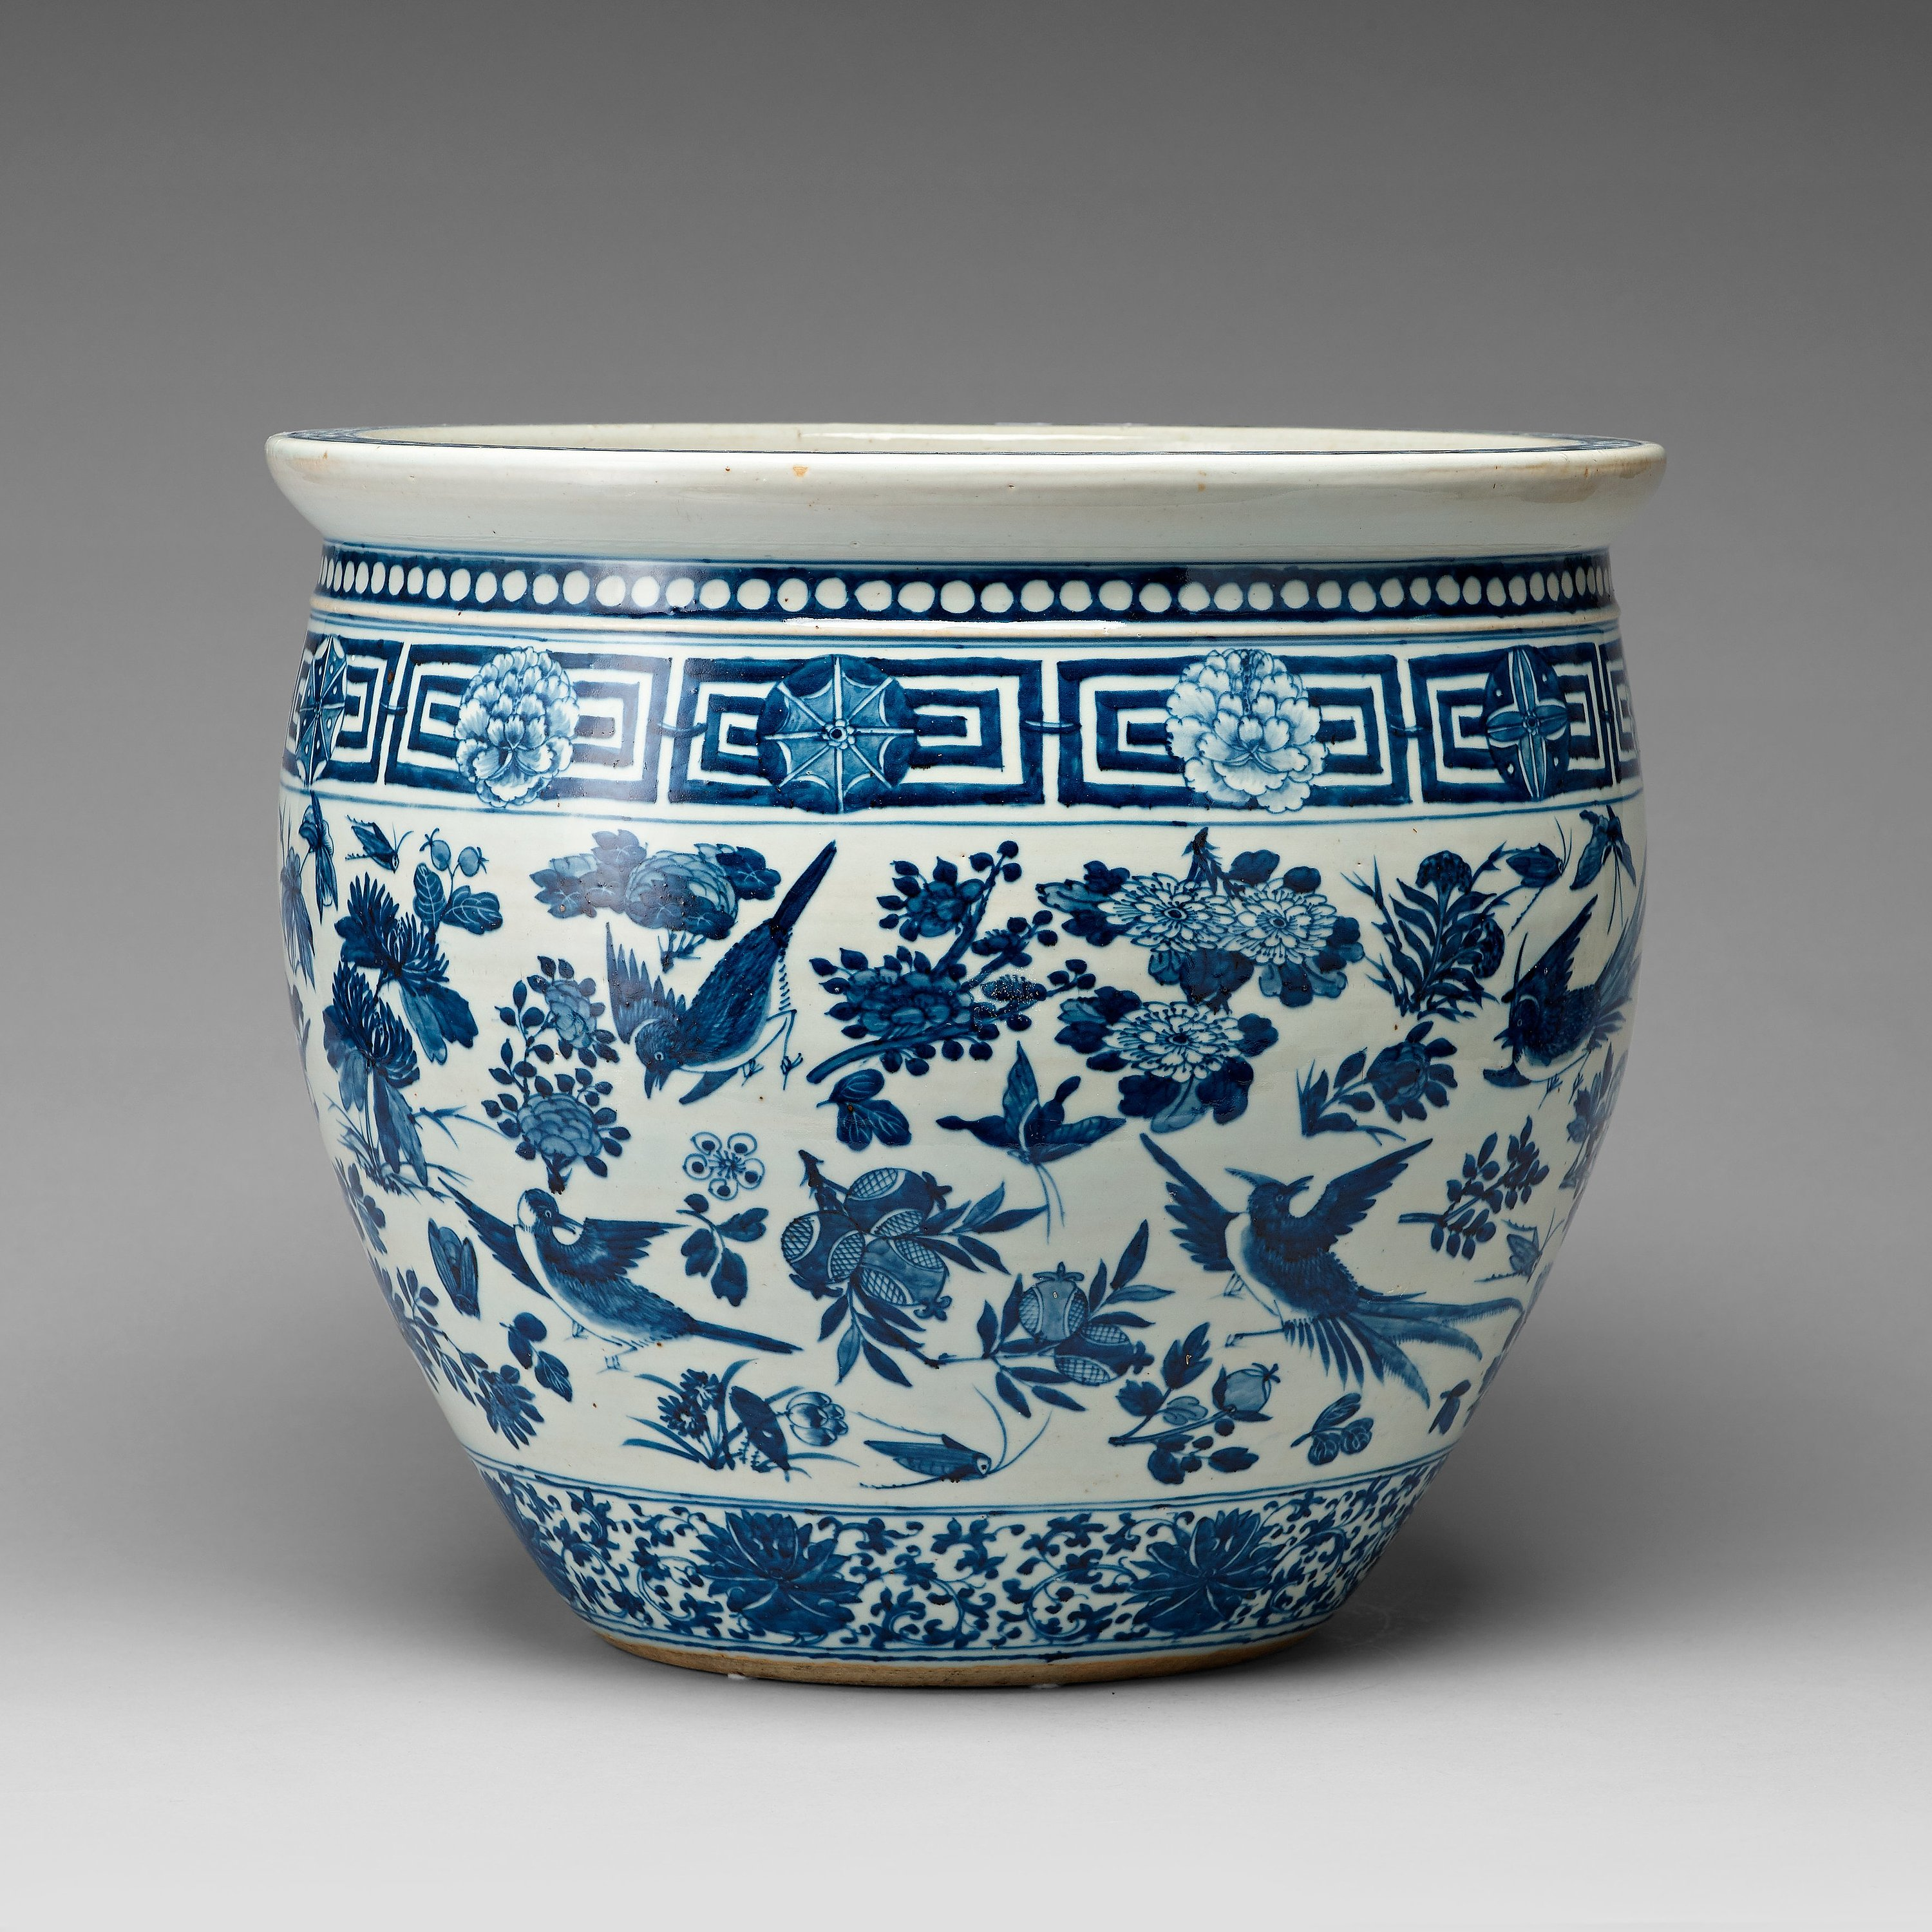 A large blue and white flower pot late qing dynasty 18th century a large blue and white flower pot late qing dynasty 18th century bukowskis mightylinksfo